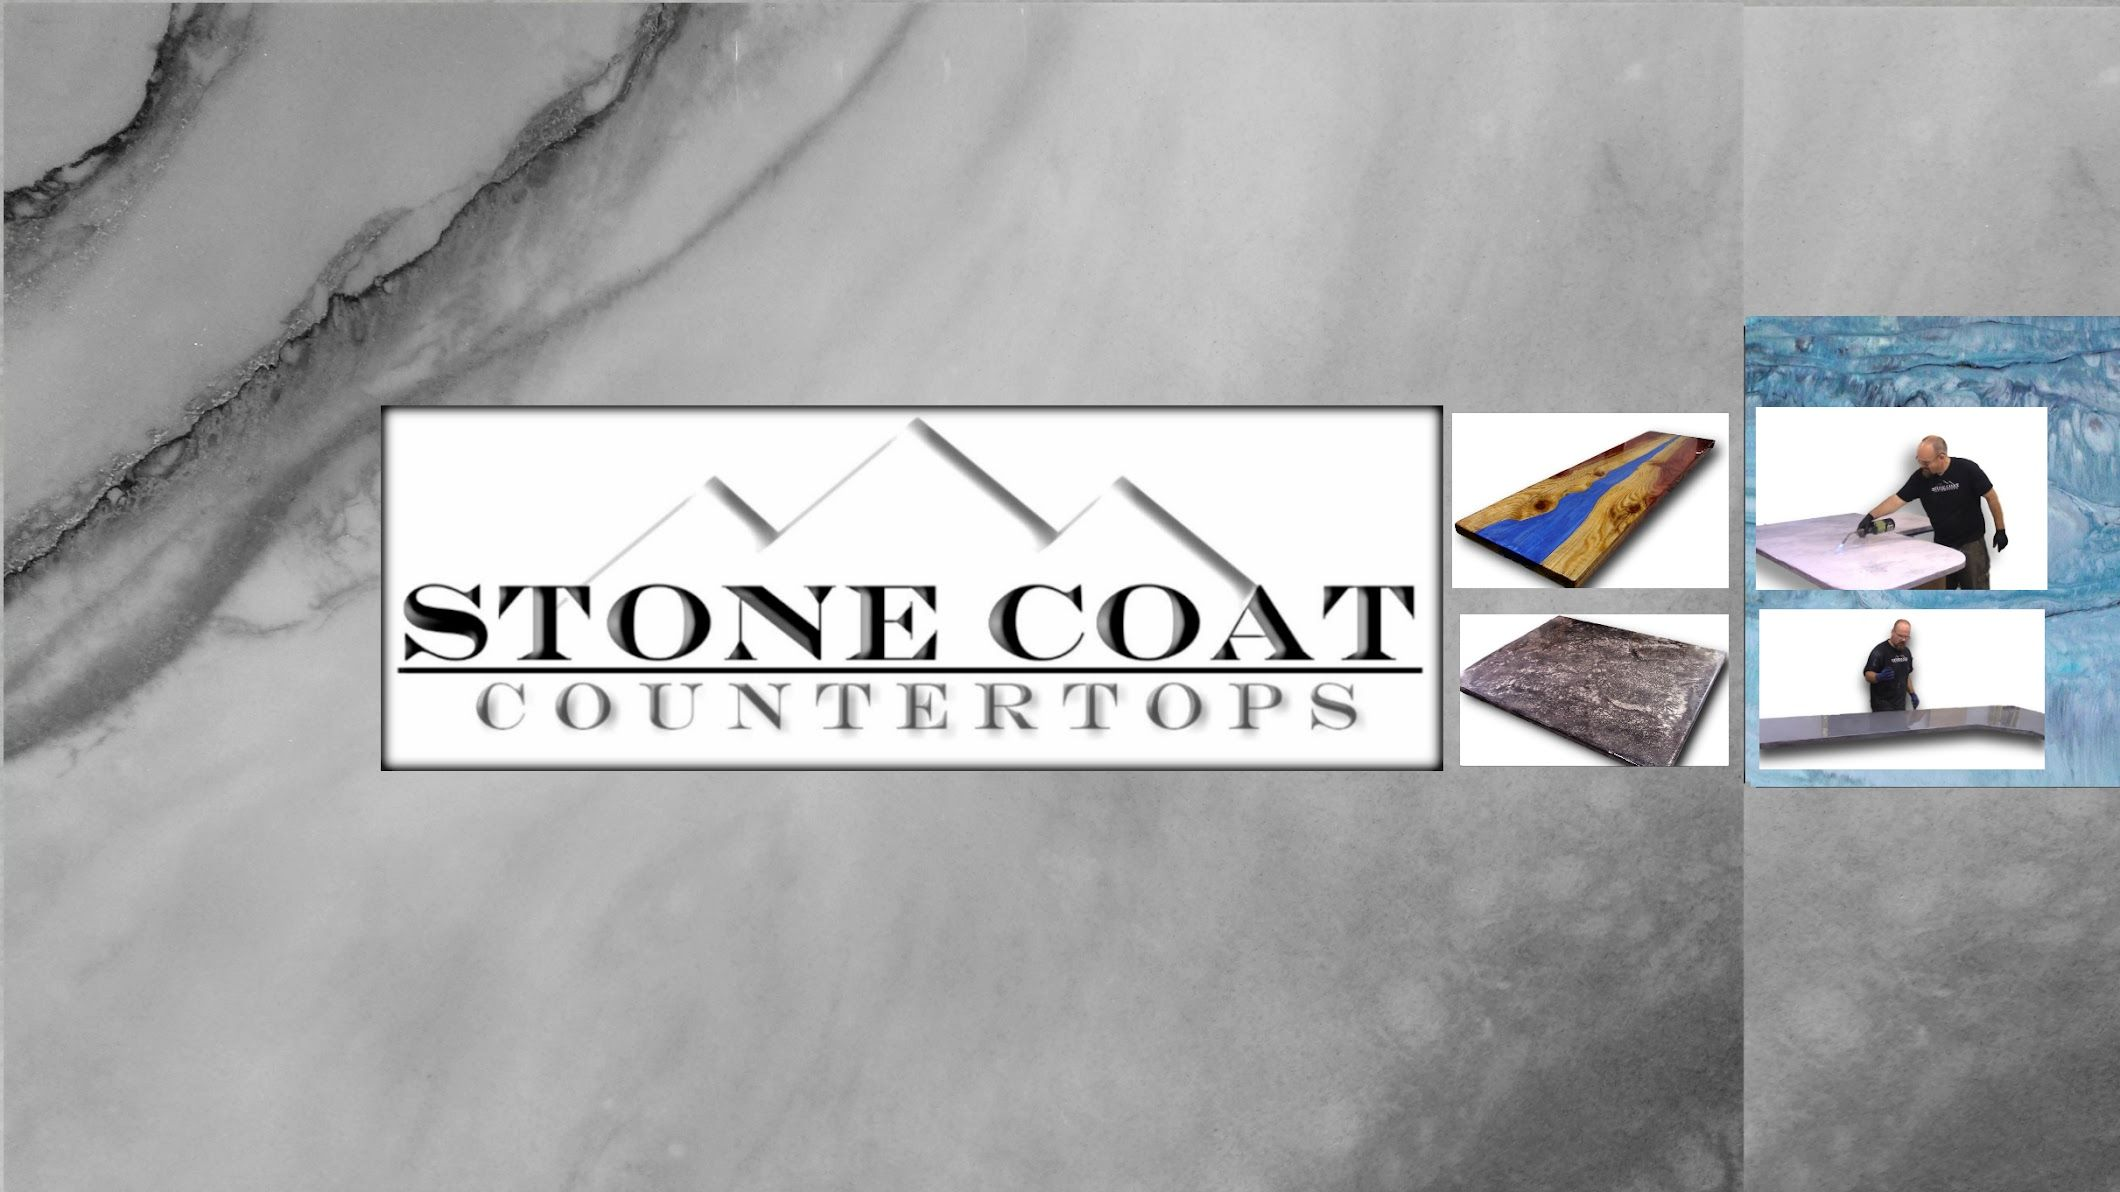 9 Stone Coat Countertops Youtube Countertops Wood Slab Table